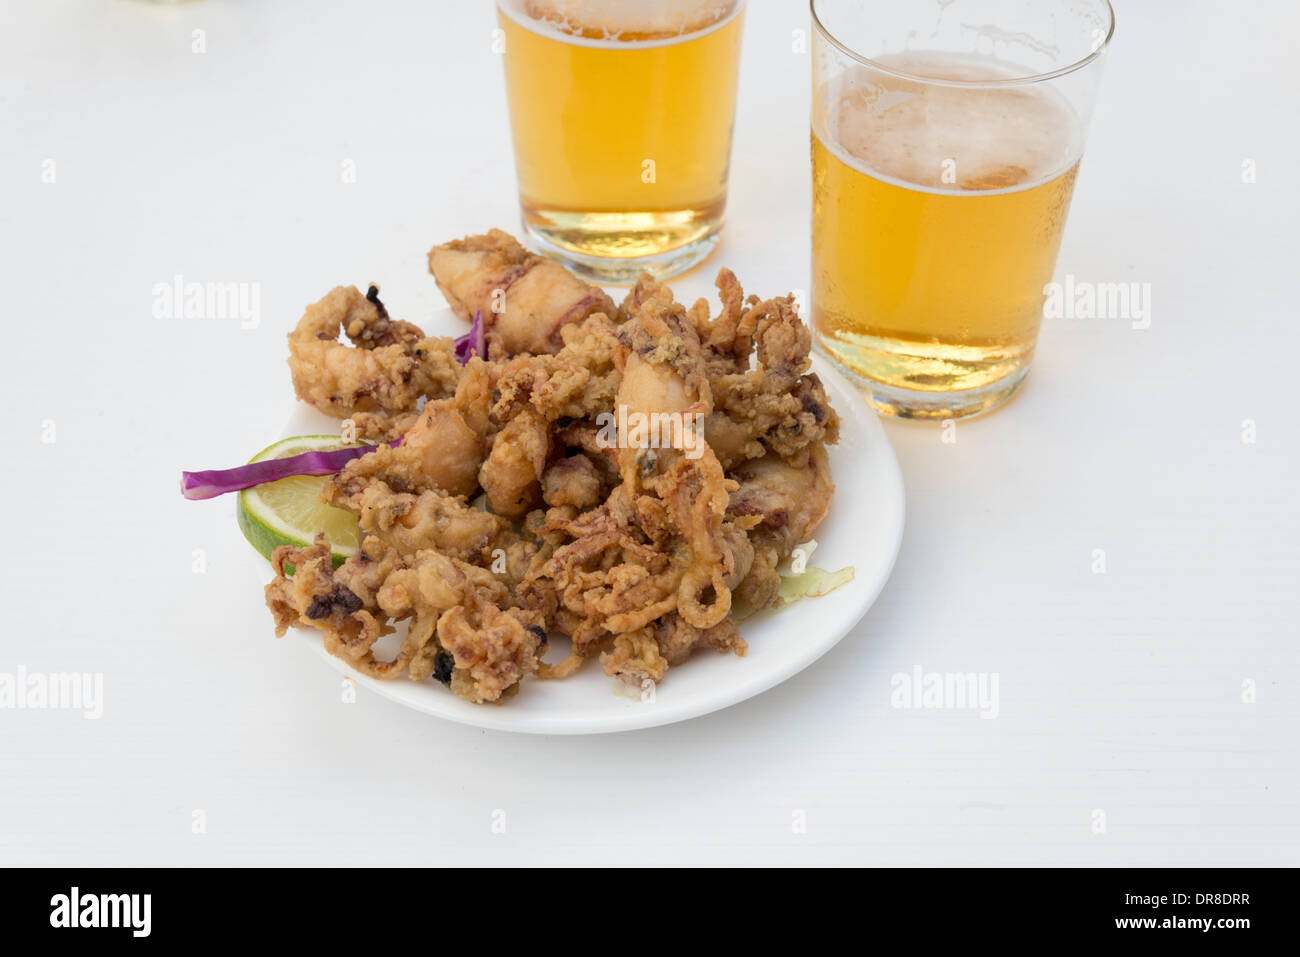 Tapa of deep fried squid, Almeria, Andalusia, Spain - Stock Image